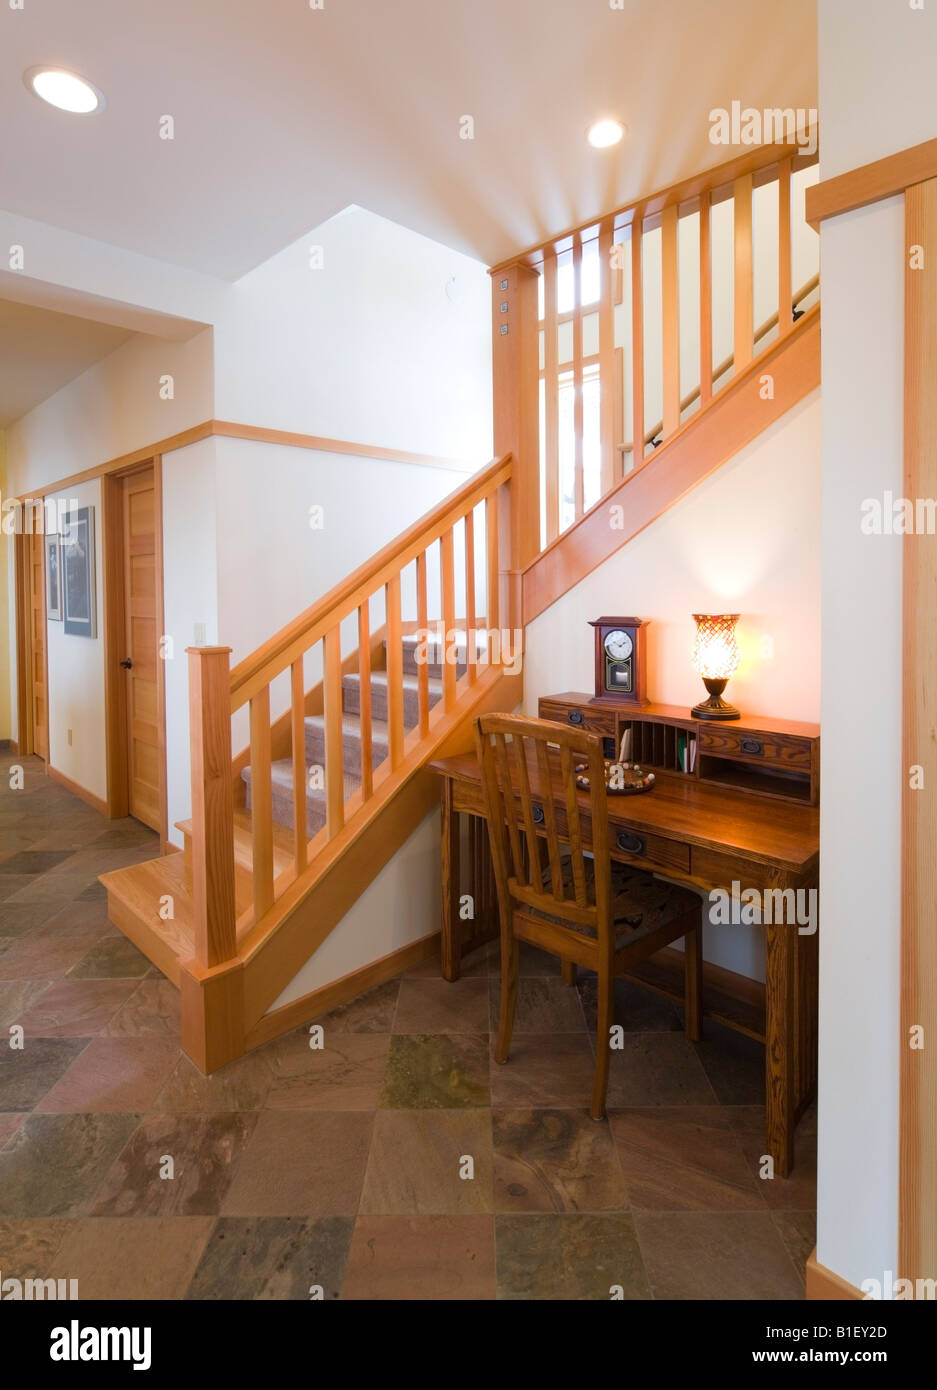 Inside View Of A Staircase In A Contemporary Craftsman Style Home,  Anchorage Alaska